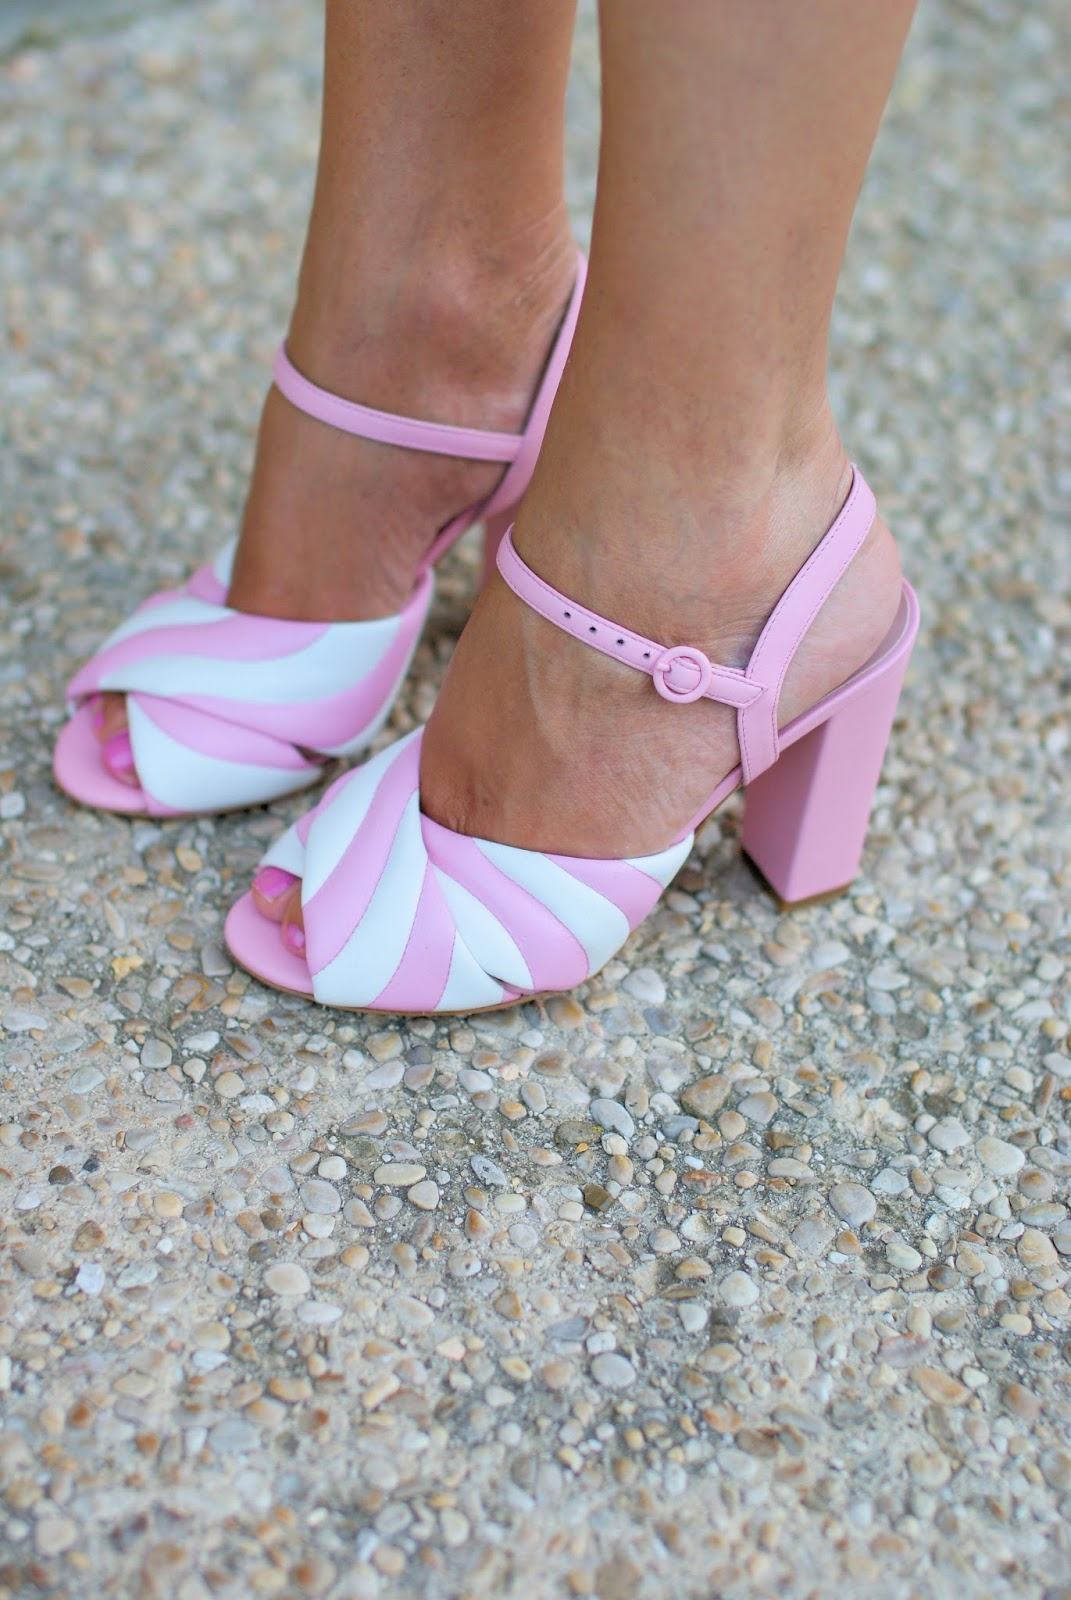 Moschino candy sandals on Fashion and Cookies fashion blog, fashion blogger style